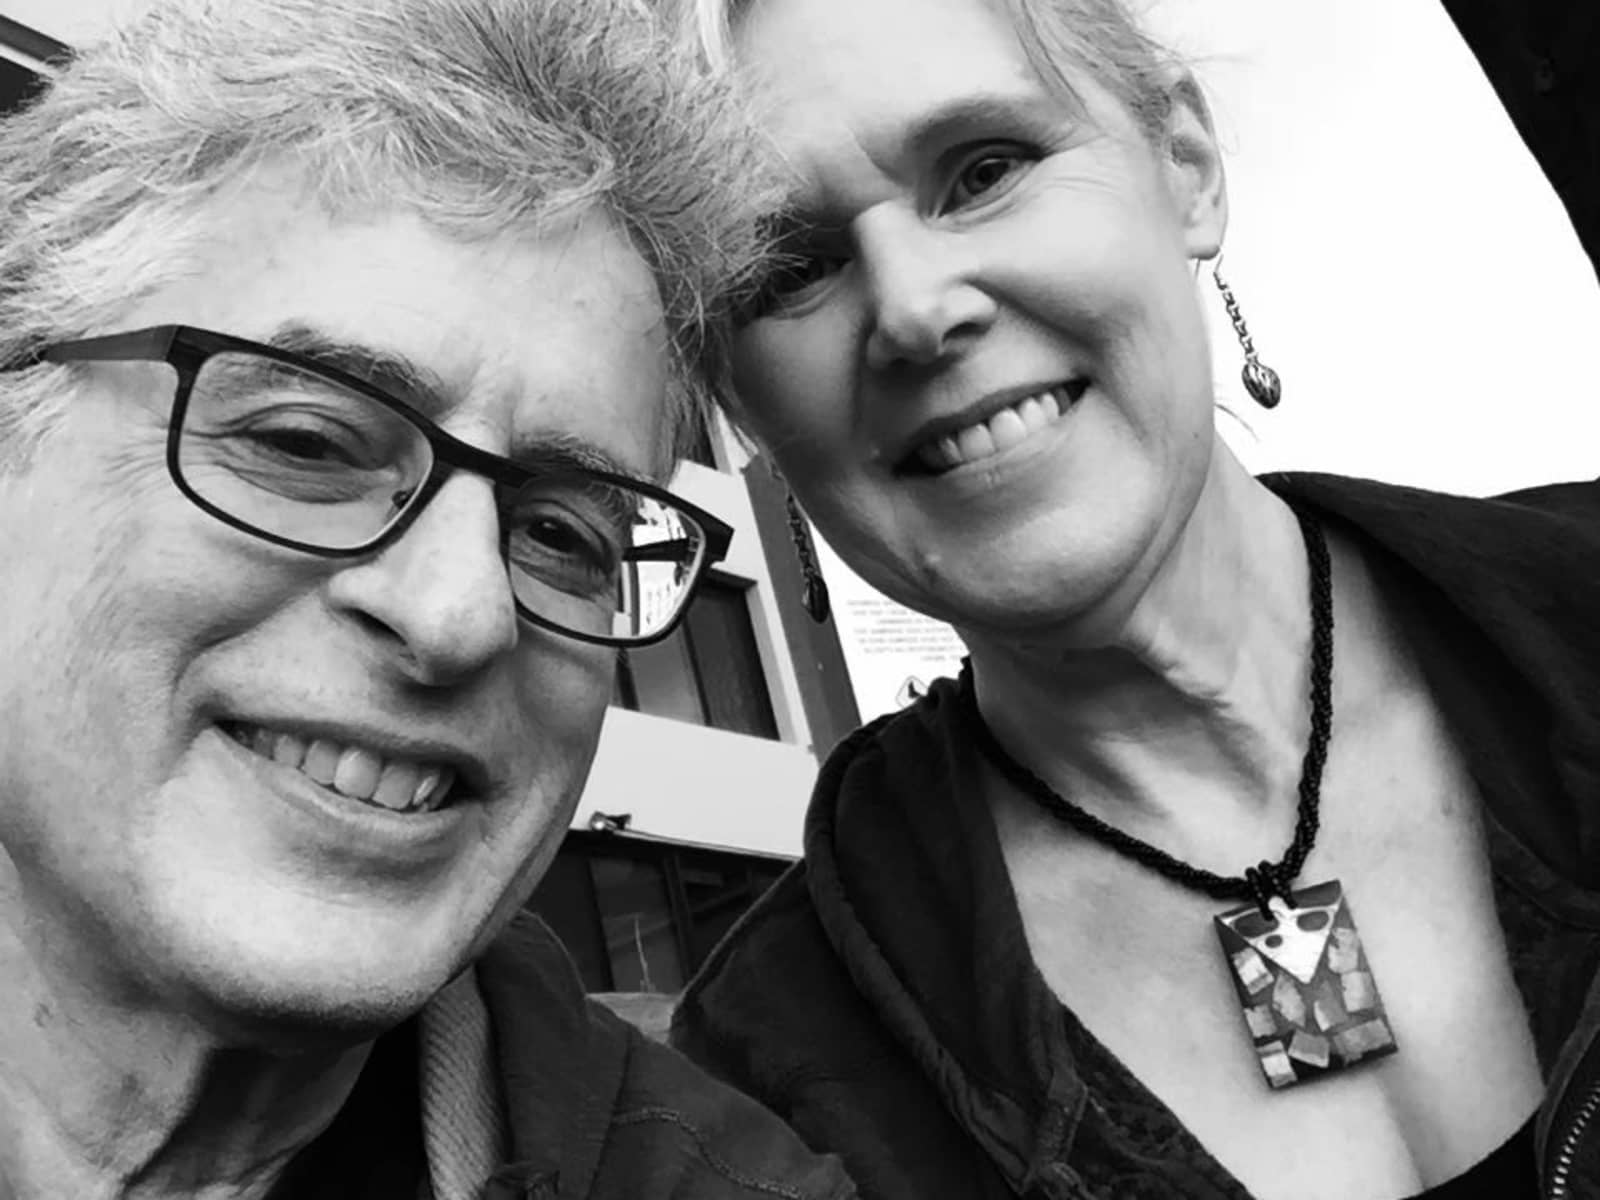 Teri & steven & Steven from Lake Forest Park, Washington, United States